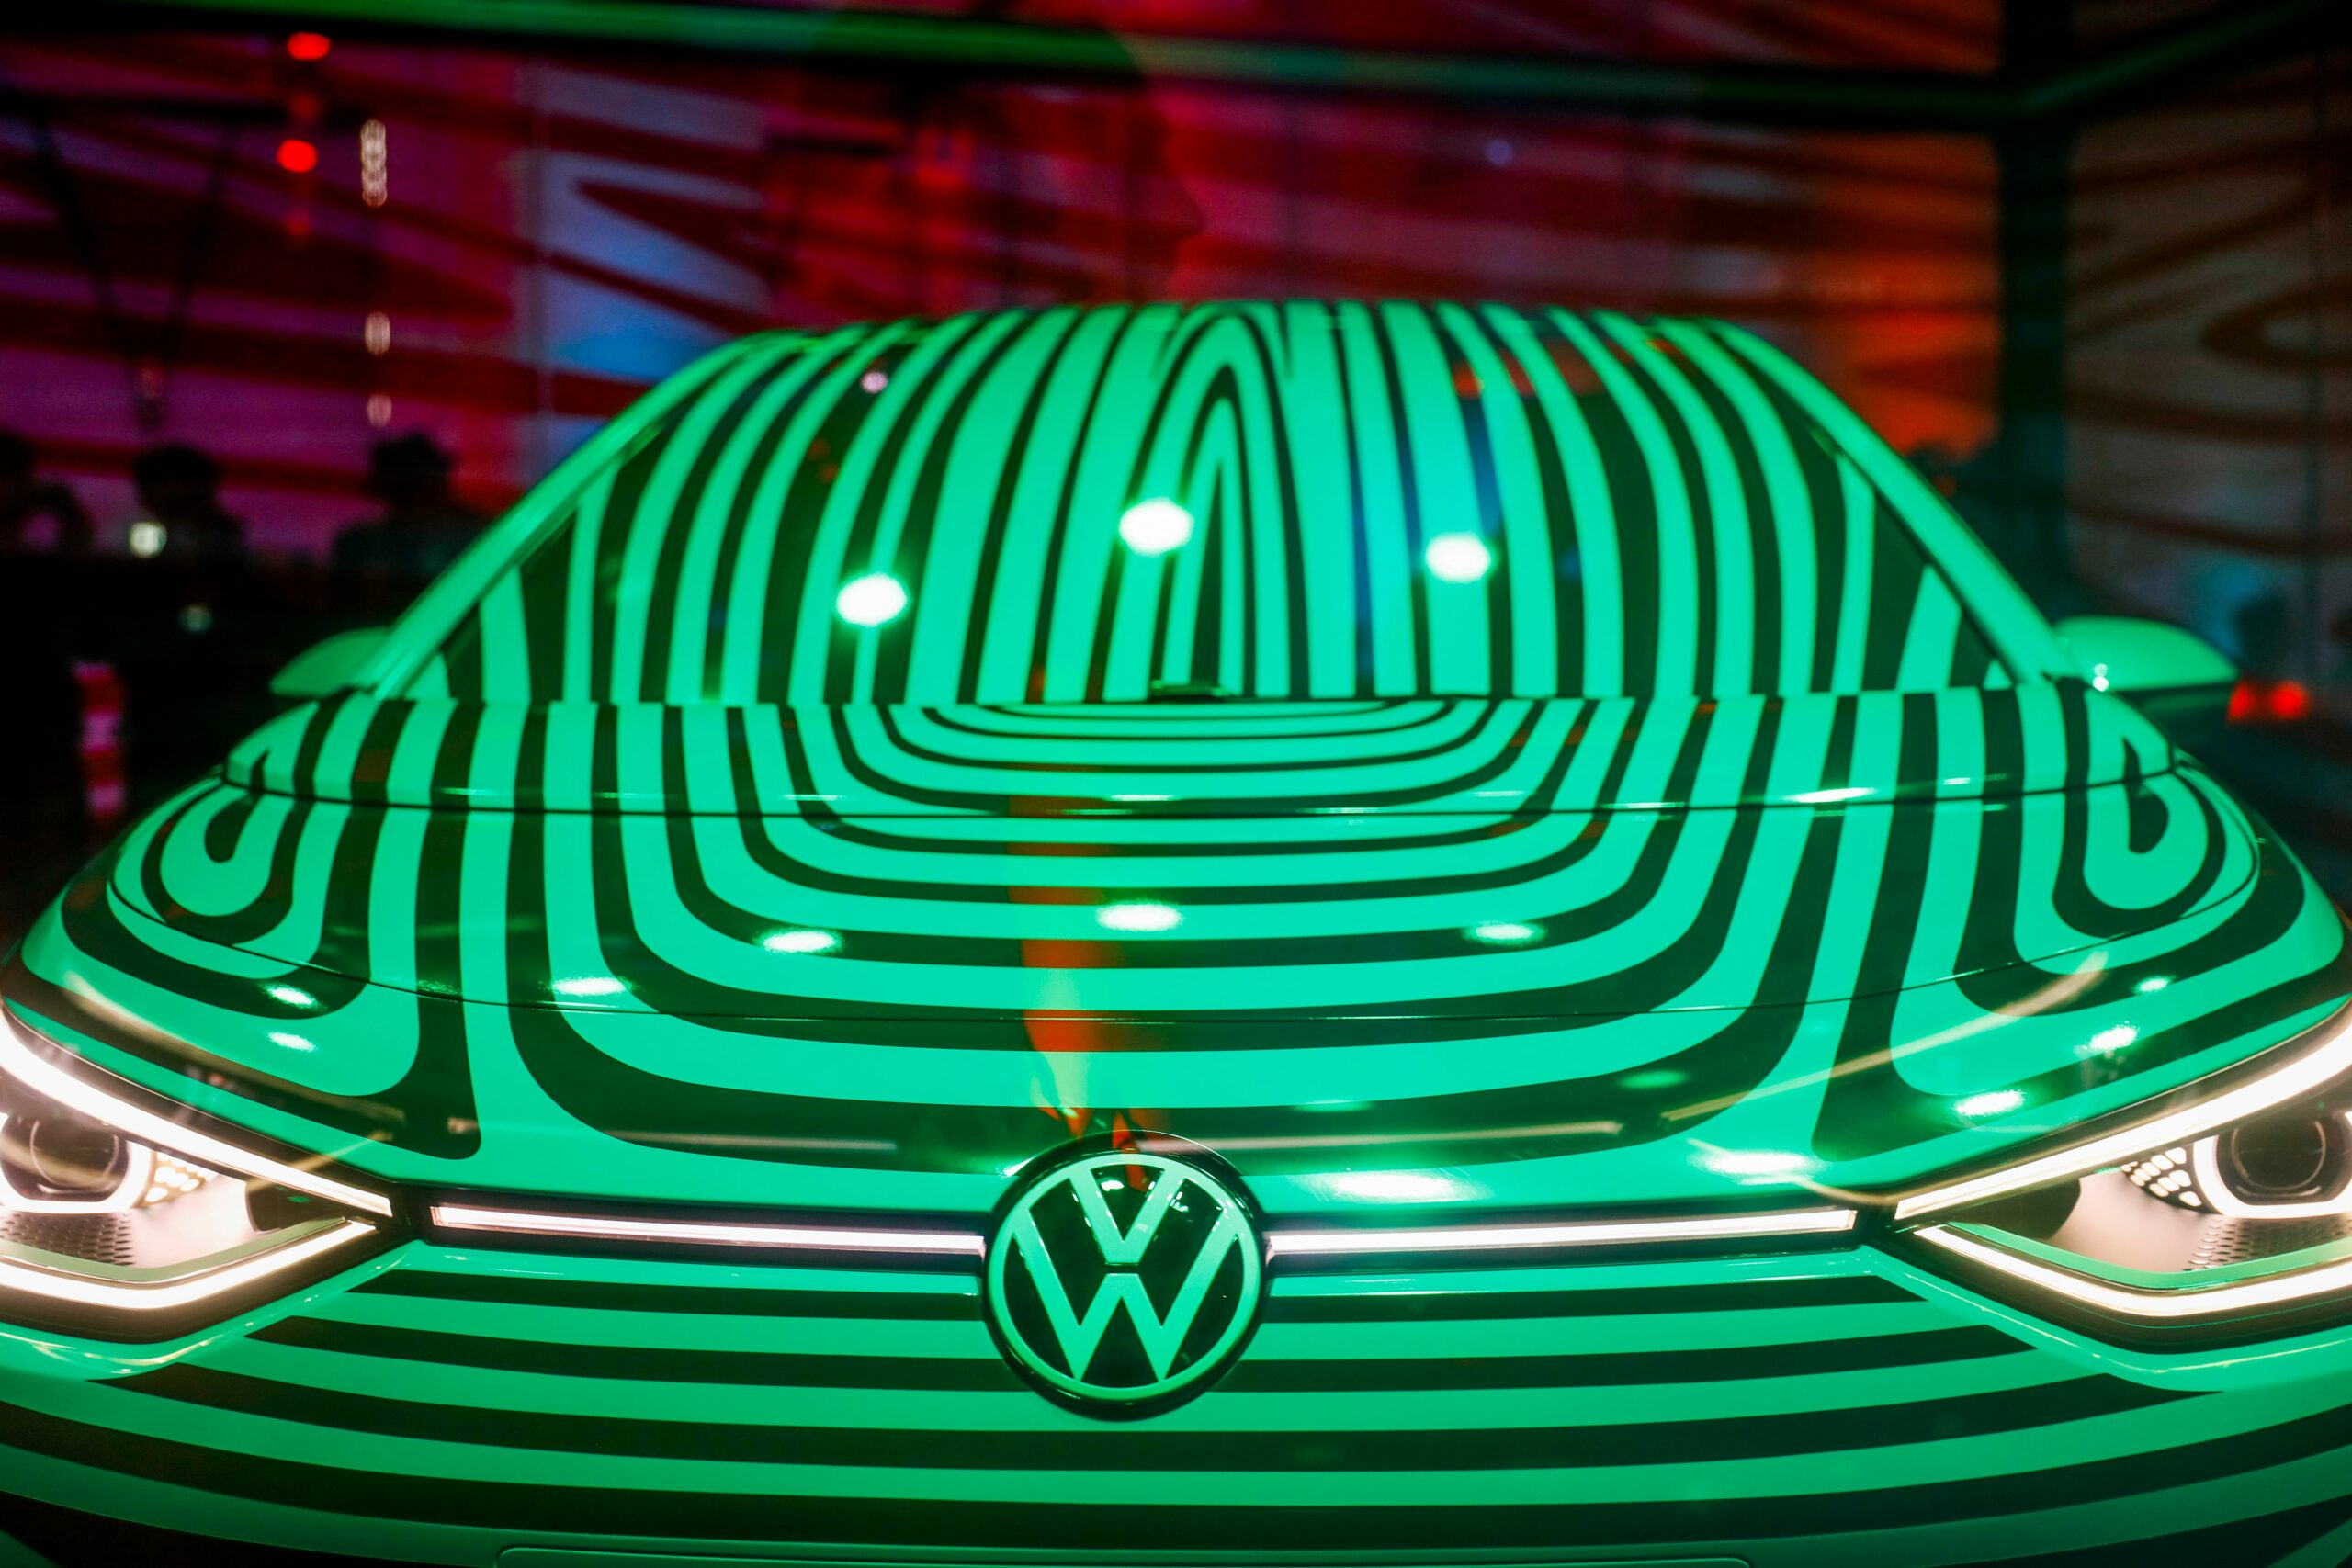 A Volkswagen ID 3 electric car is seen in a glass cage during a press conference in Berlin on May 8, 2019. Credit: Odd Andersen/AFP via Getty Images